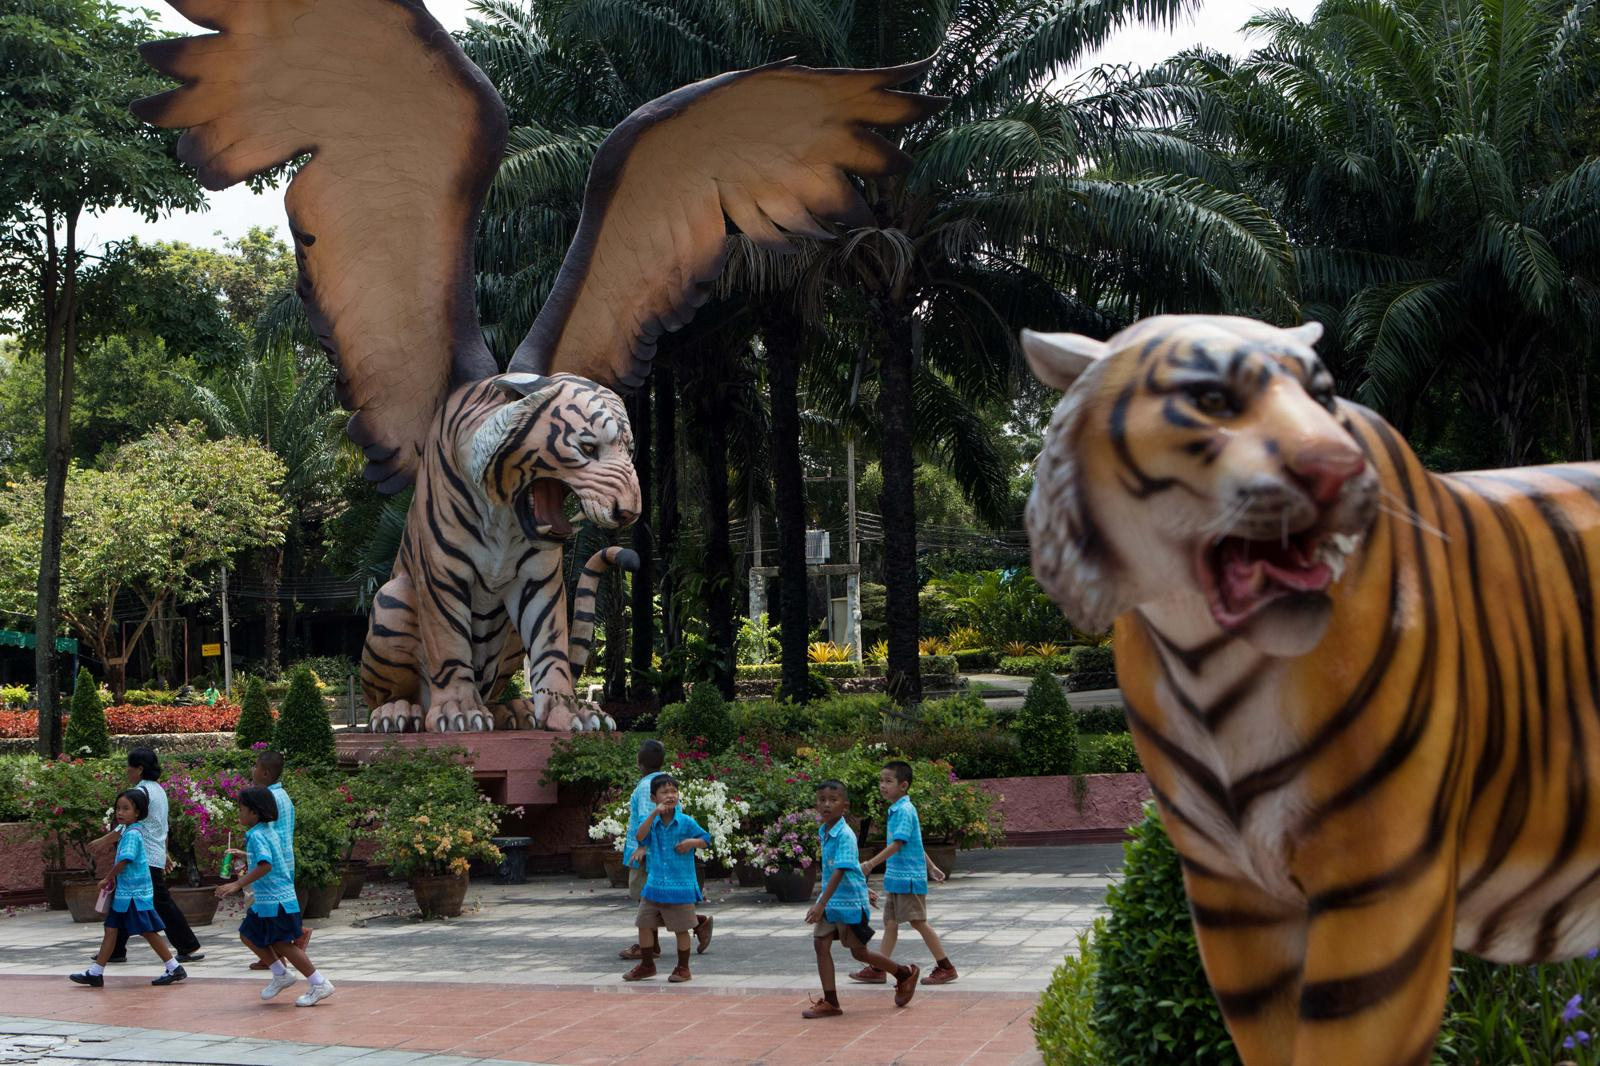 Pattaya, Thailand � September 28, 2018 : Schoolchildren walk by large statues at the Sriracha Tiger Zoo. Credit: Amanda Mustard for New York Times